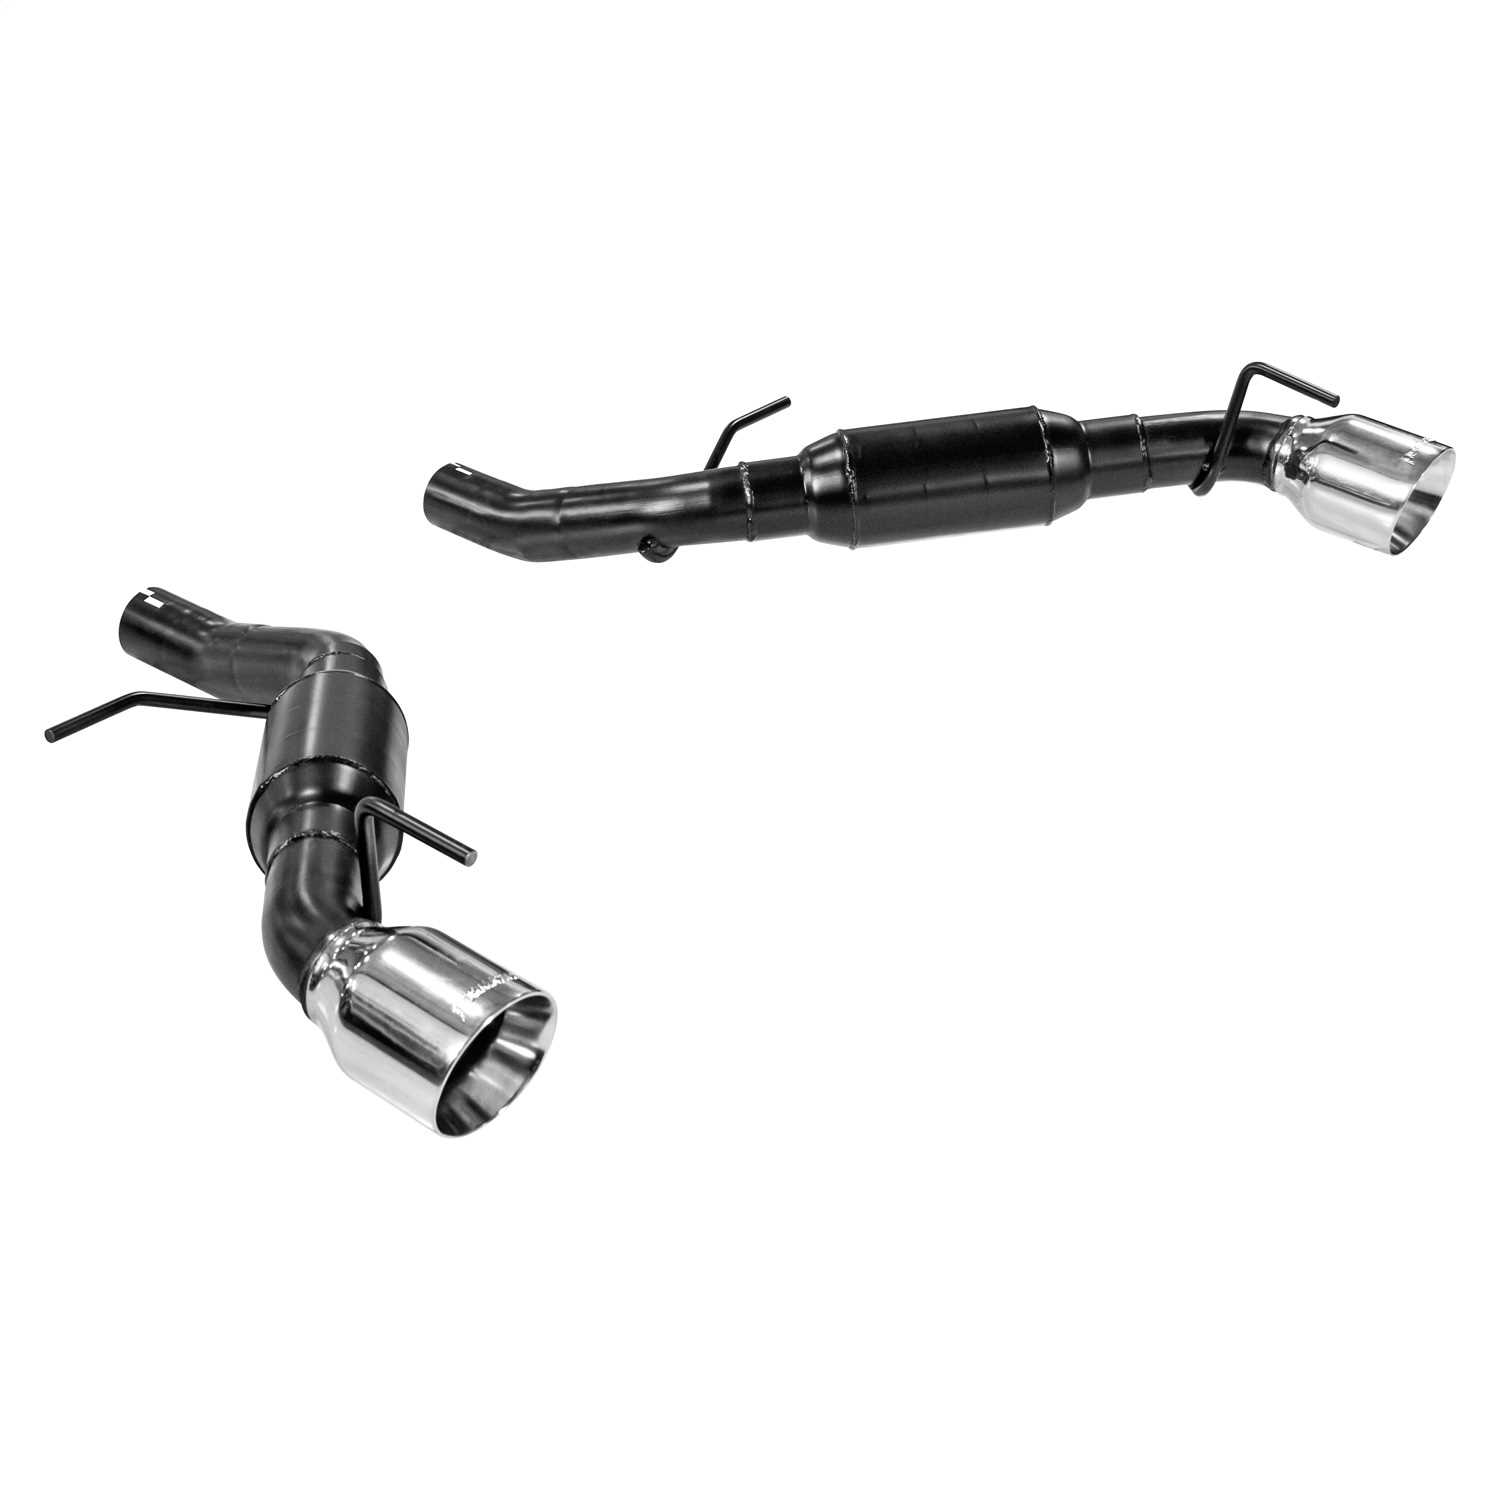 817751 Flowmaster American Thunder Axle Back Exhaust System